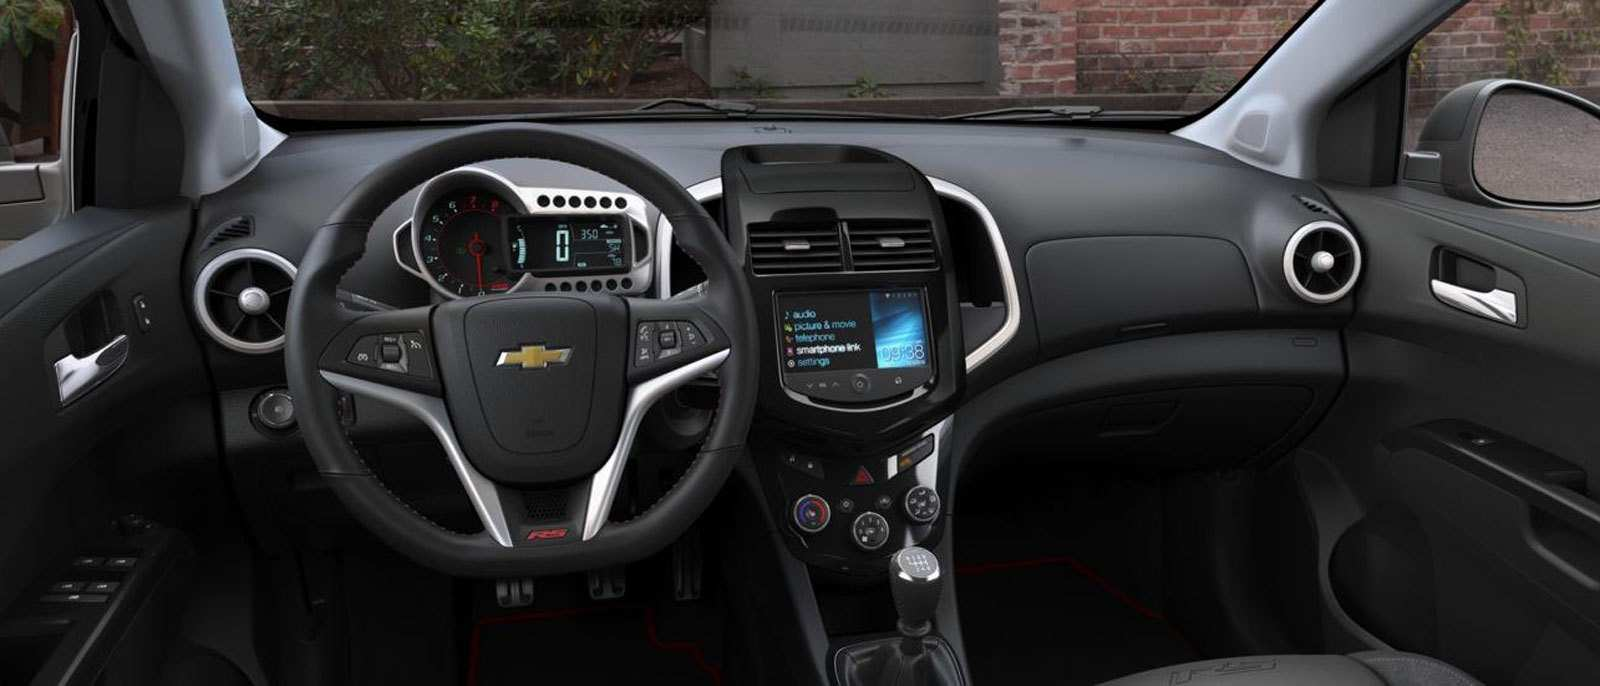 79 The Best 2020 Chevy Sonic Price And Release Date